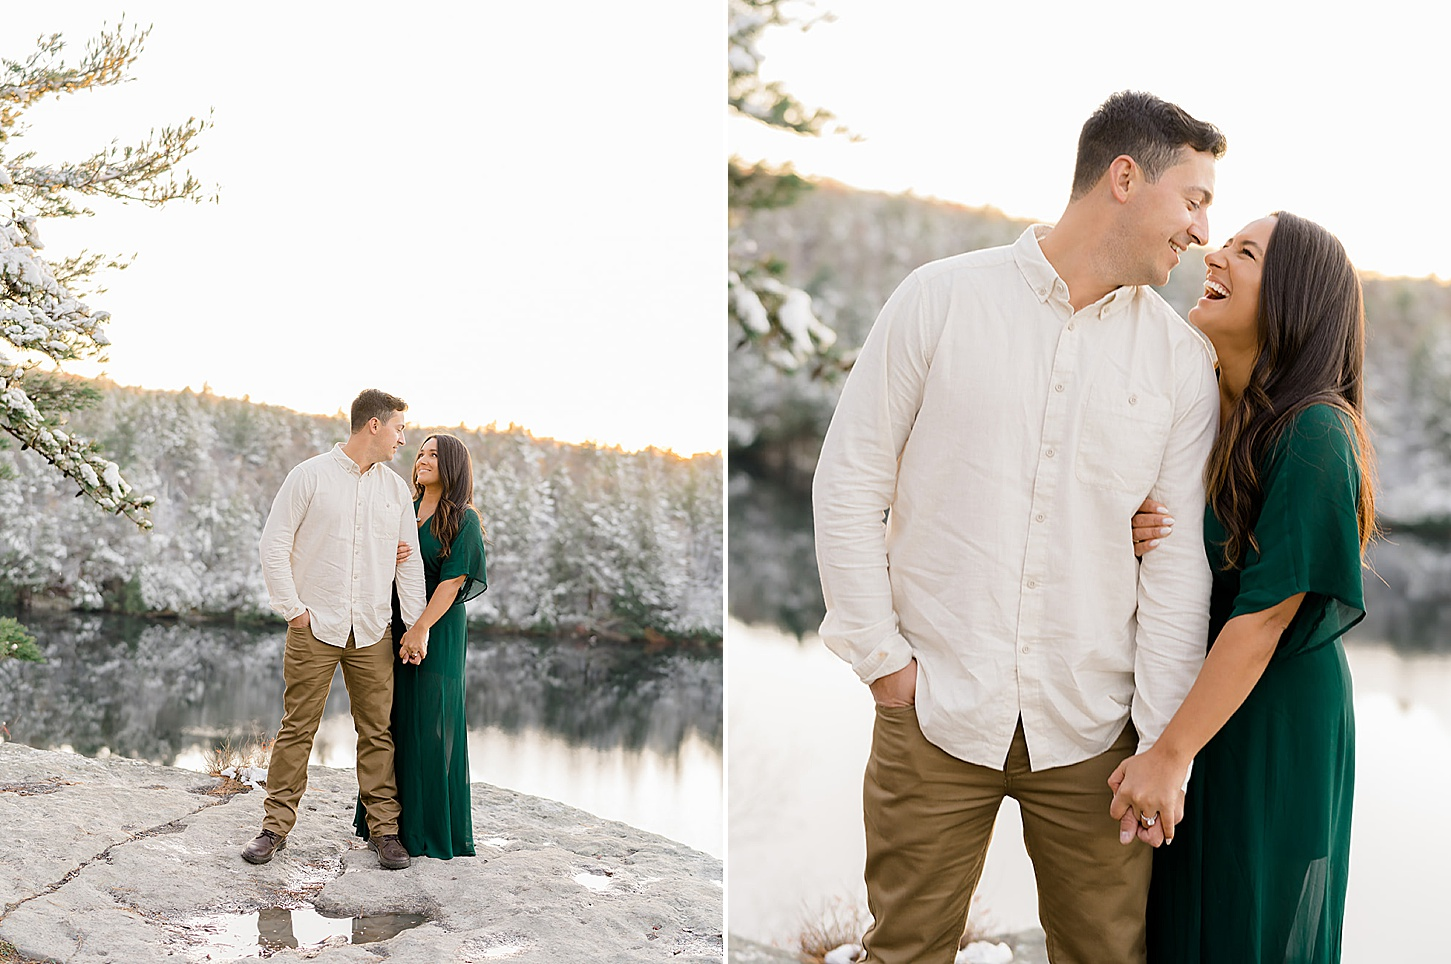 Vermont Destination Engagement Photography by Magdalena Studios 0011